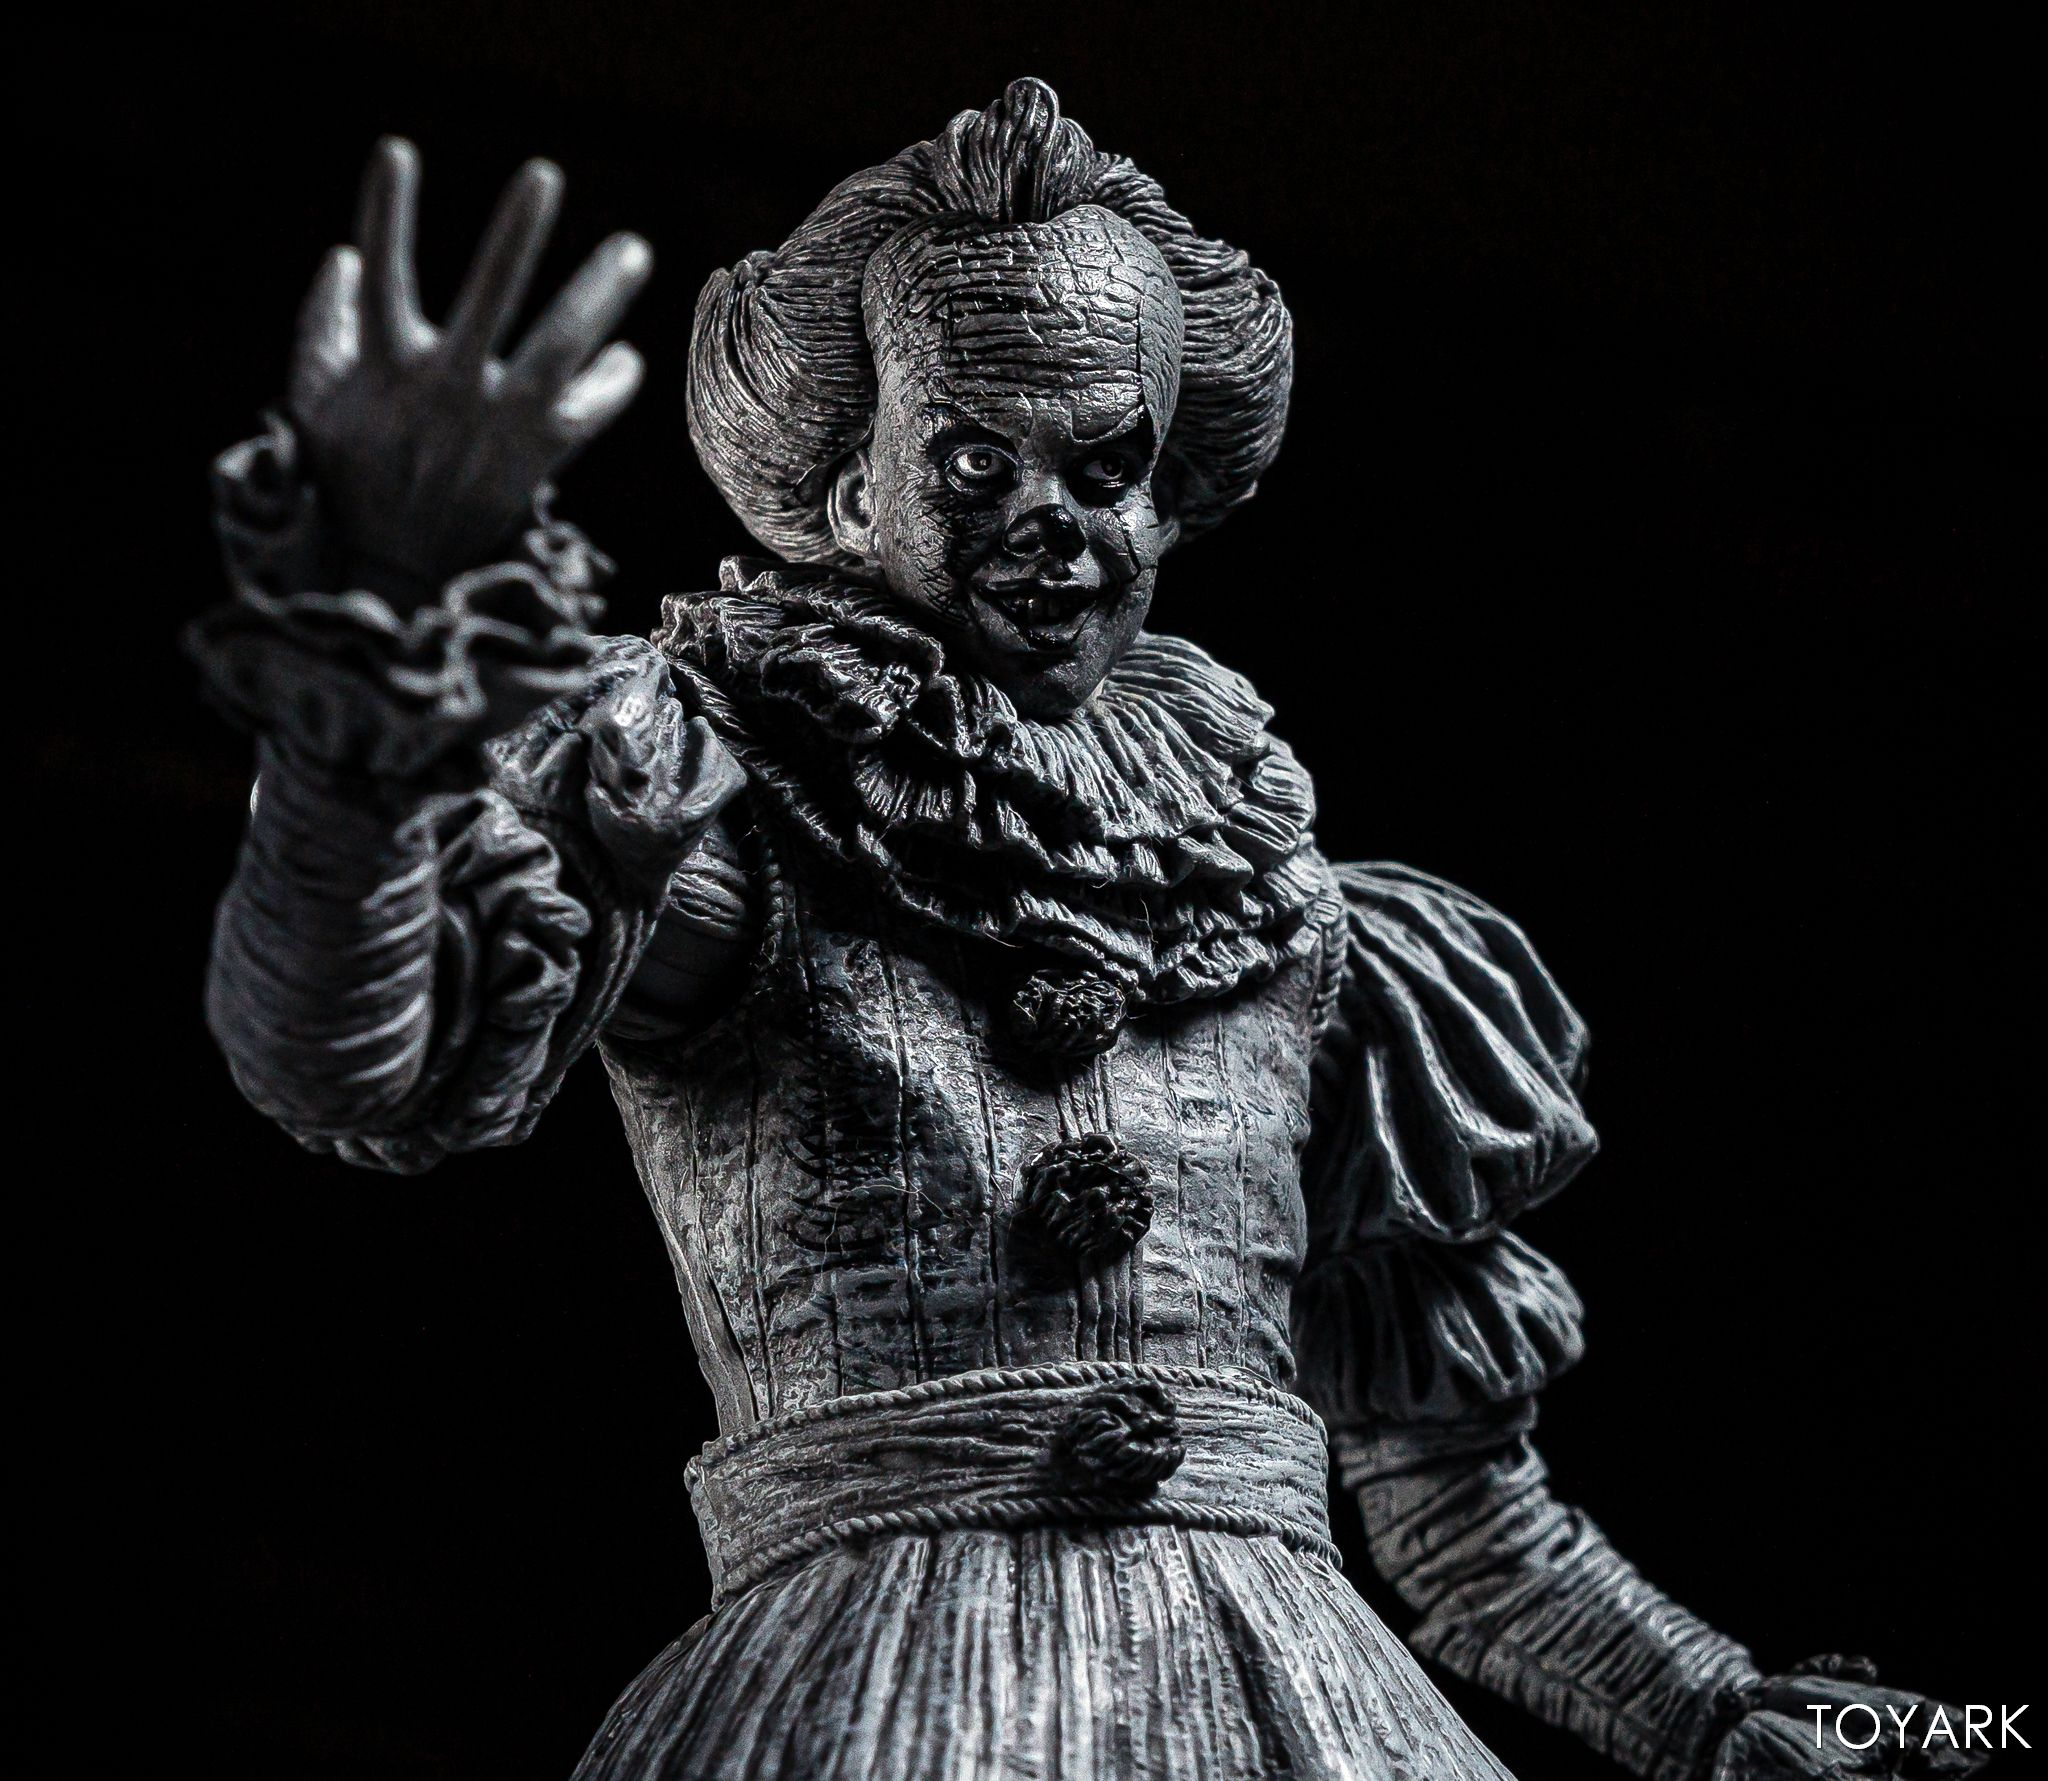 https://news.toyark.com/wp-content/uploads/sites/4/2019/07/SDCC-2019-Etched-Pennywise-NECA-025.jpg